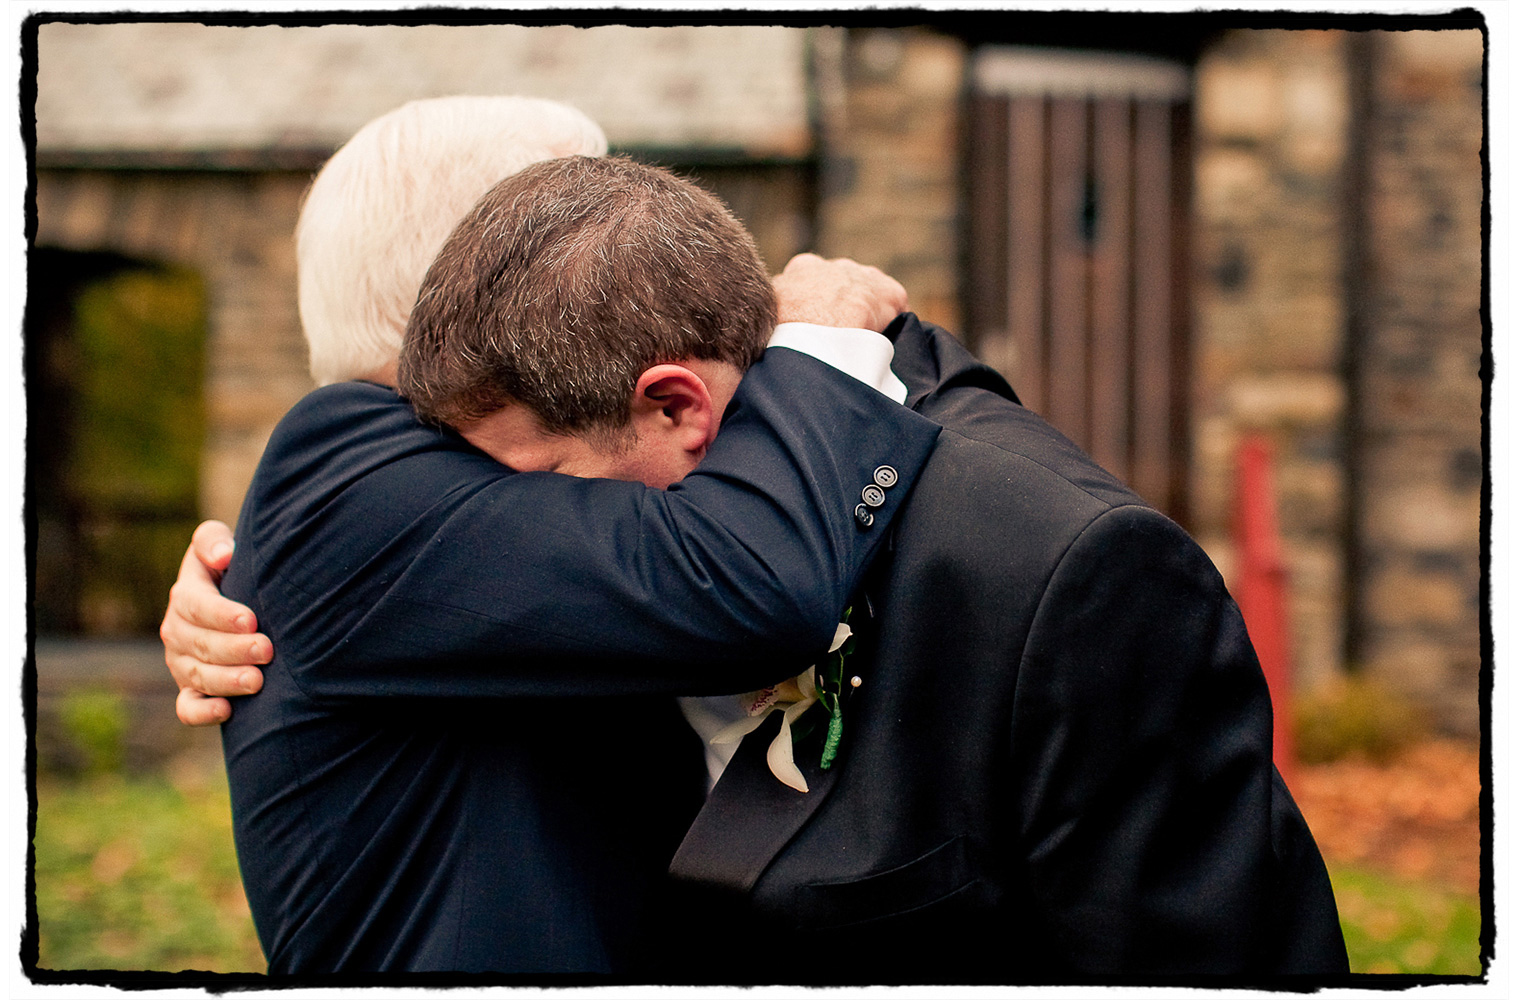 This groom shares an emotional hug with his father after marrying the love of his life.